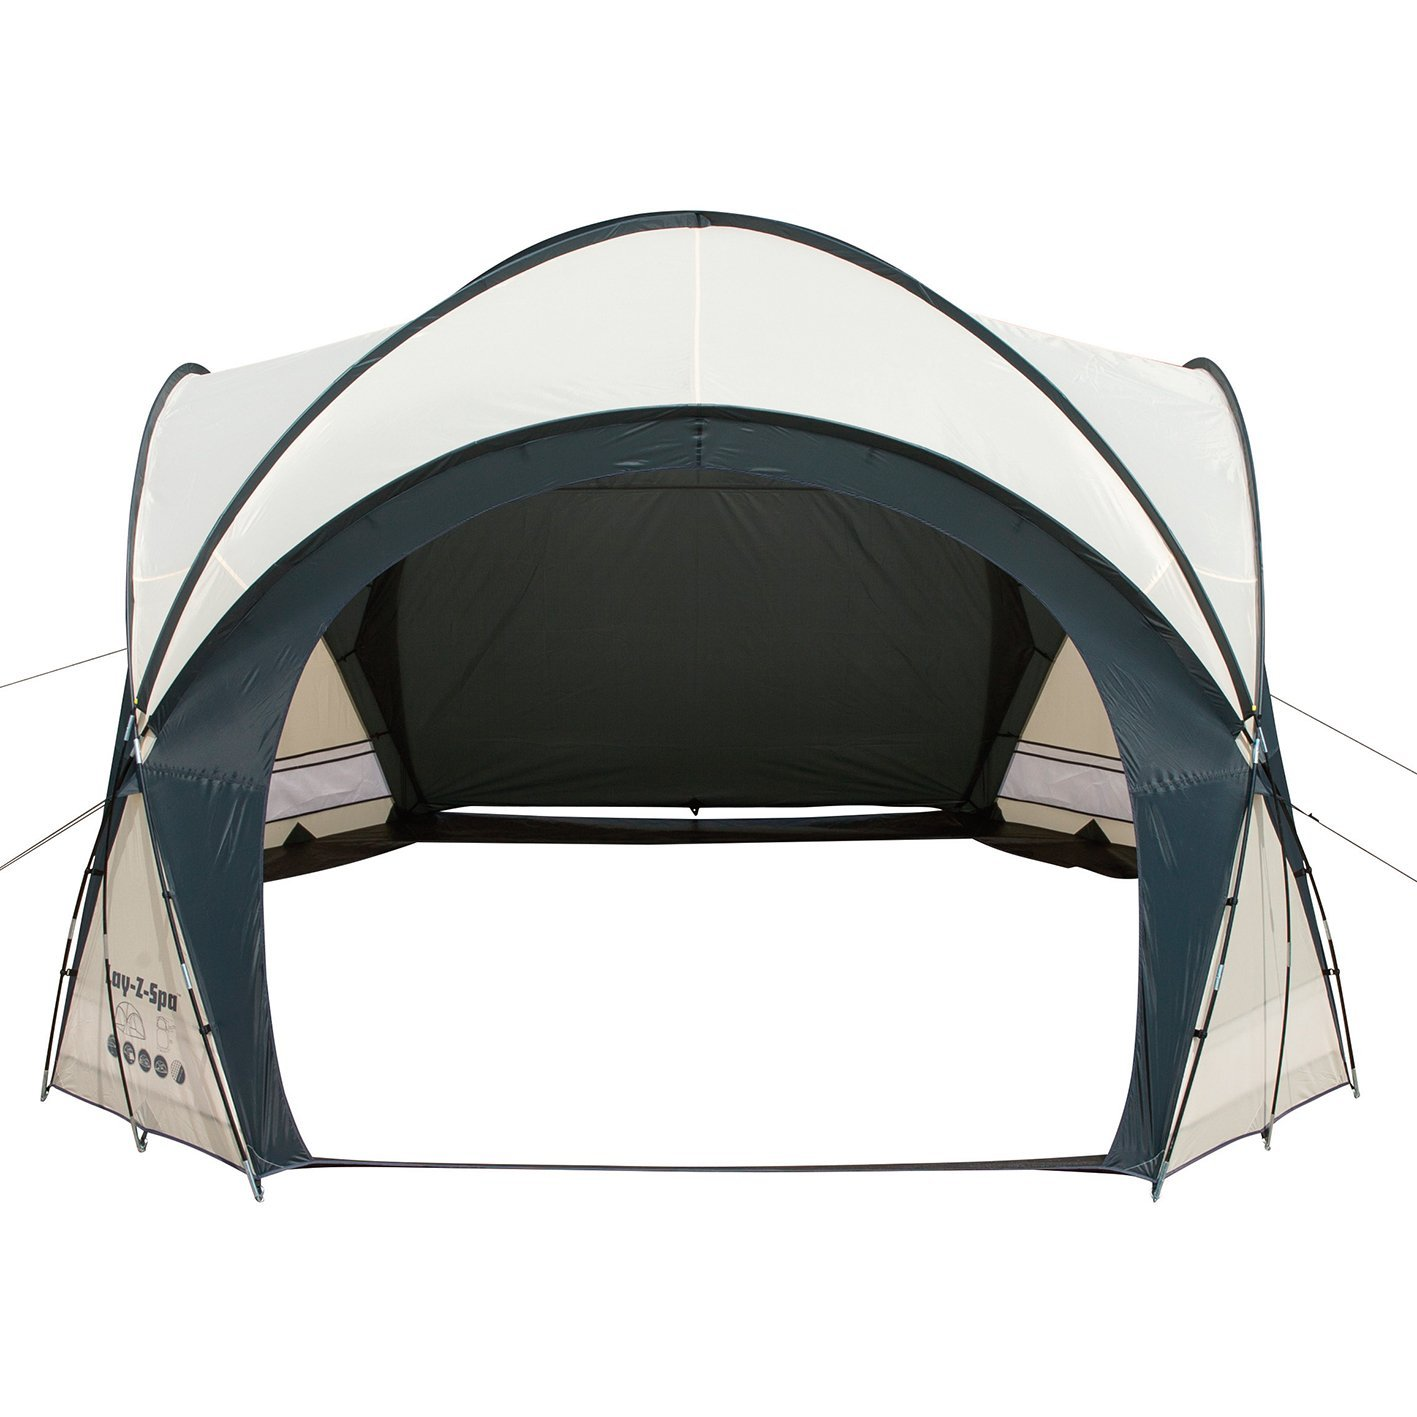 Lay-Z-Spa Gazebo